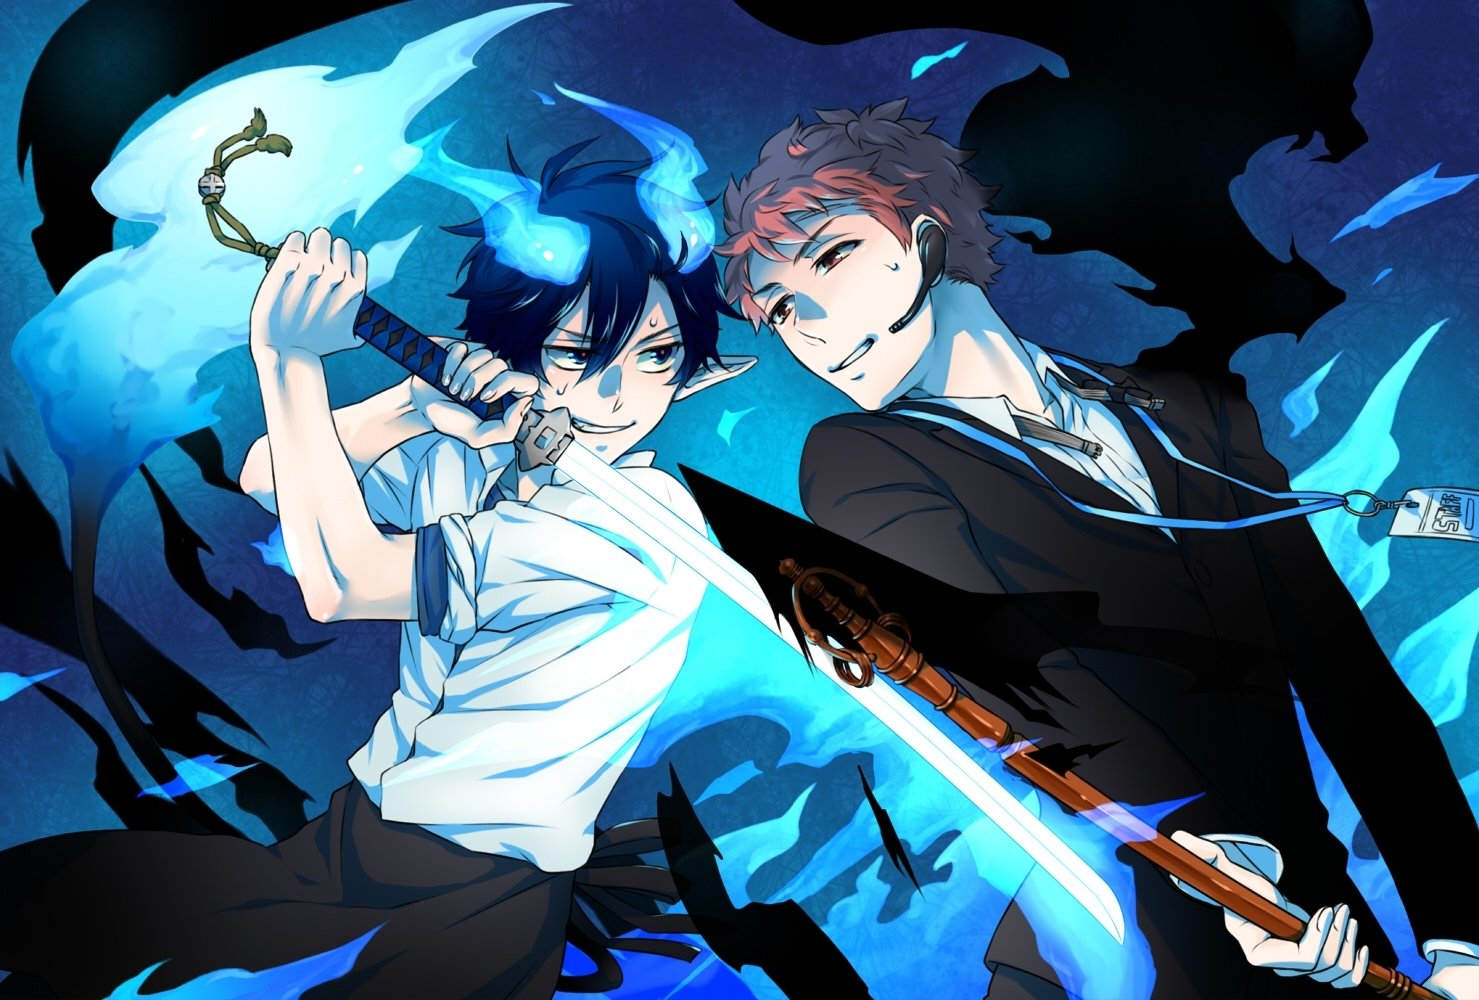 Rin okumura wallpaper and background image 1479x1000 - Blue anime wallpaper ...